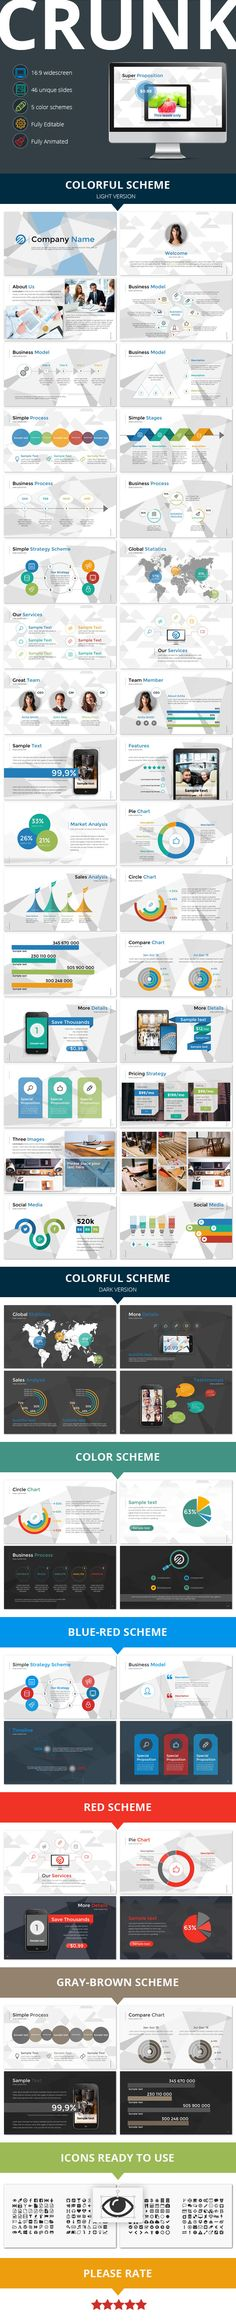 Accolade Presentation Template Presentation templates, Power